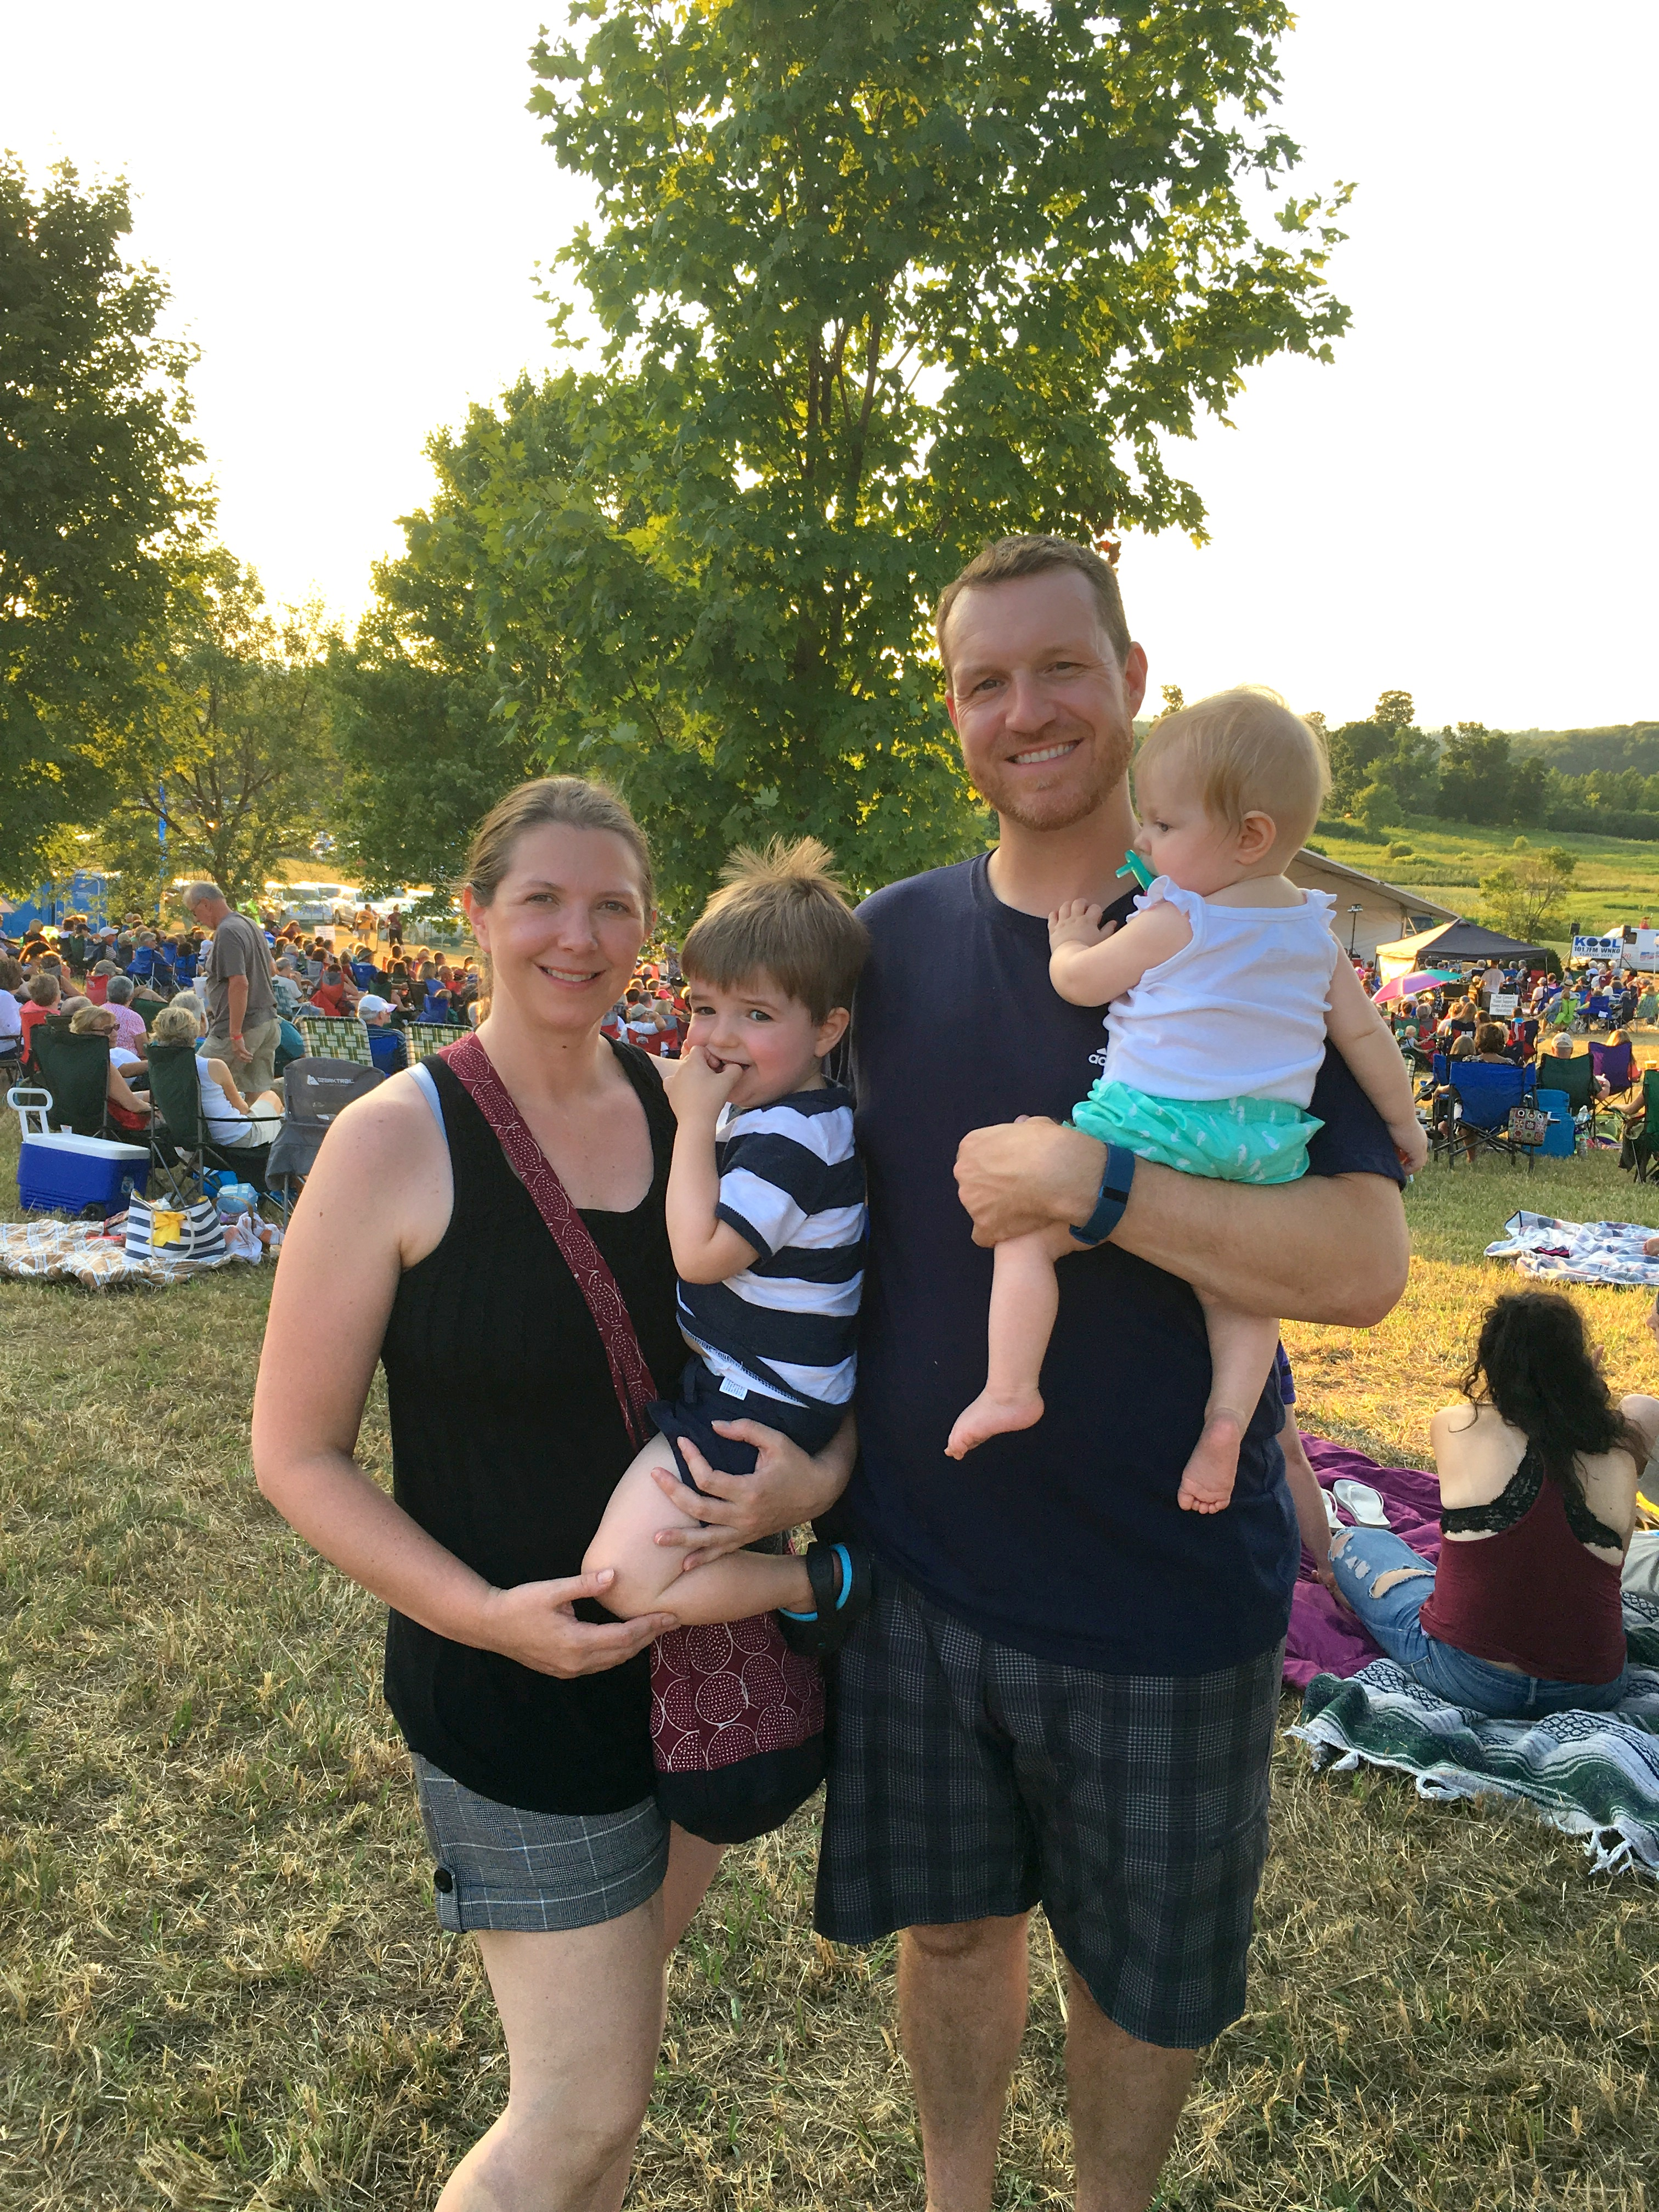 Life Lately: In August…